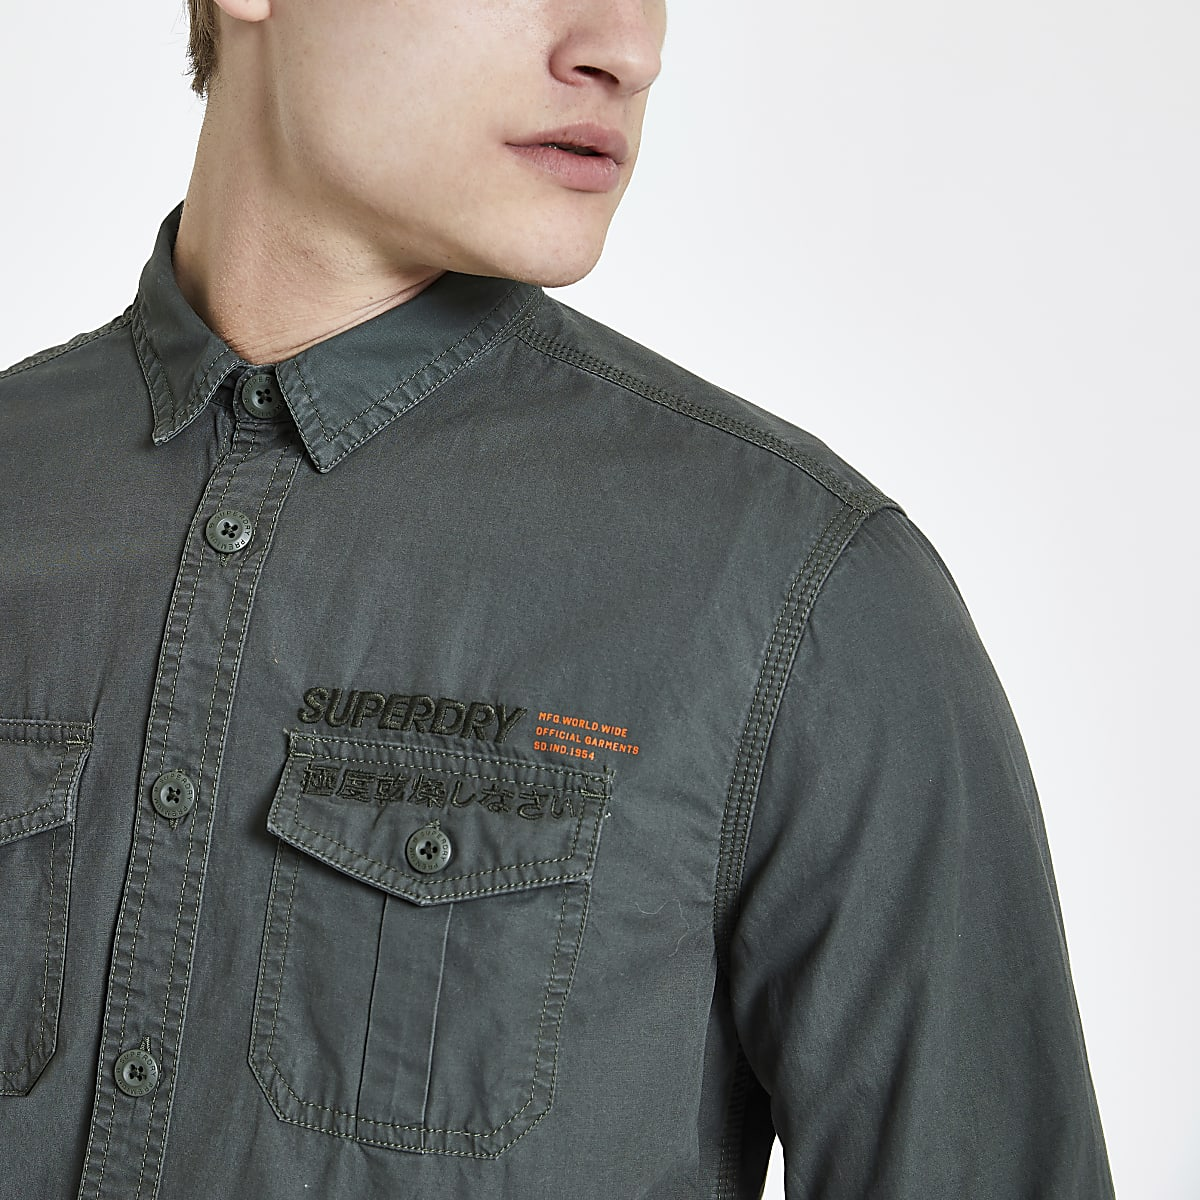 Superdry dark green long sleeve shirt